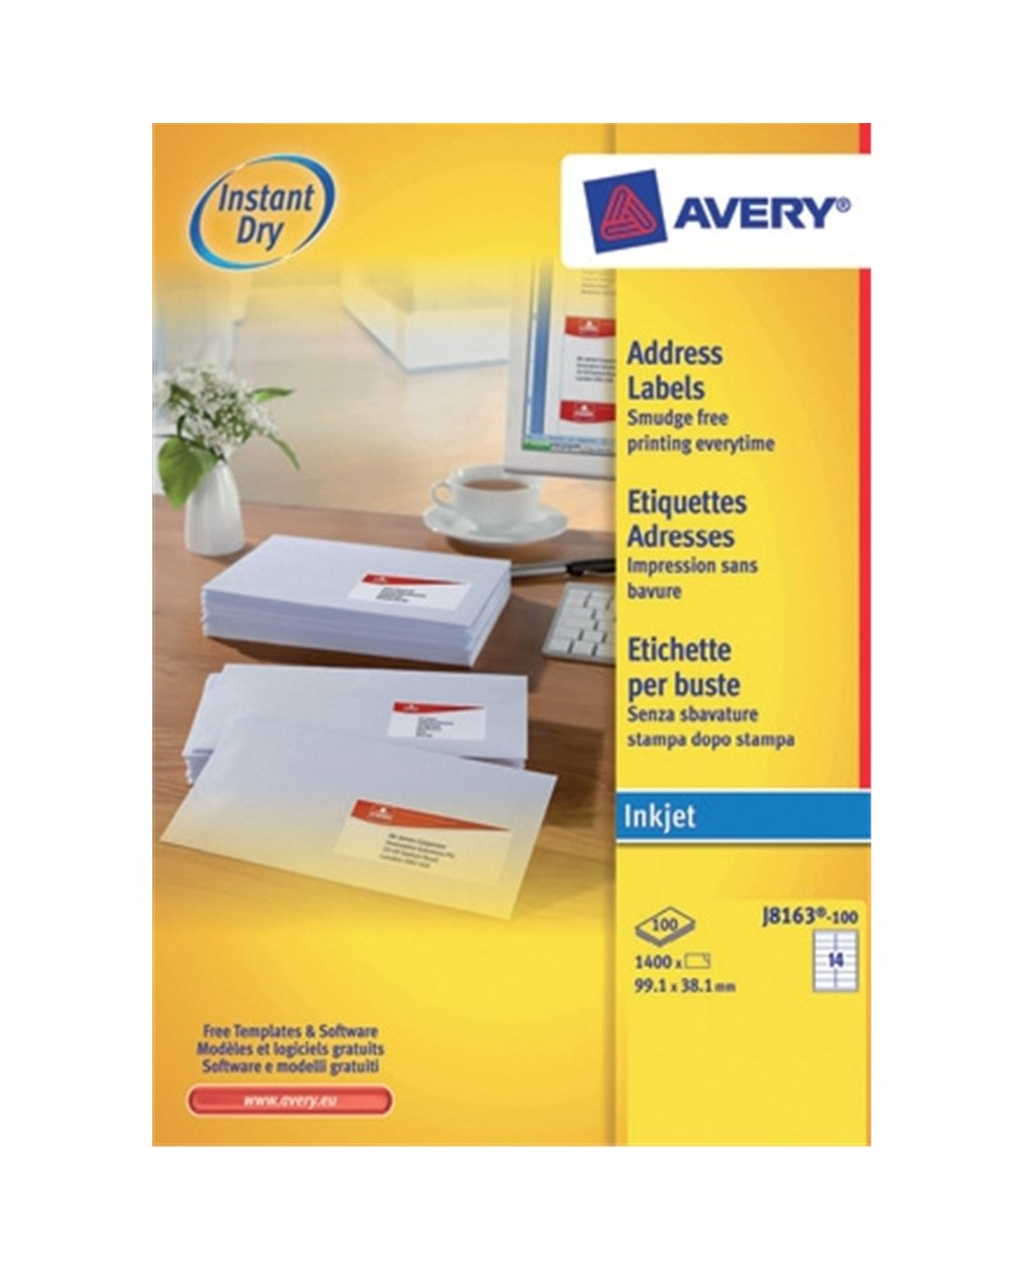 Avery Inkjet Labels - J8651, 38.1 x 21.2mm